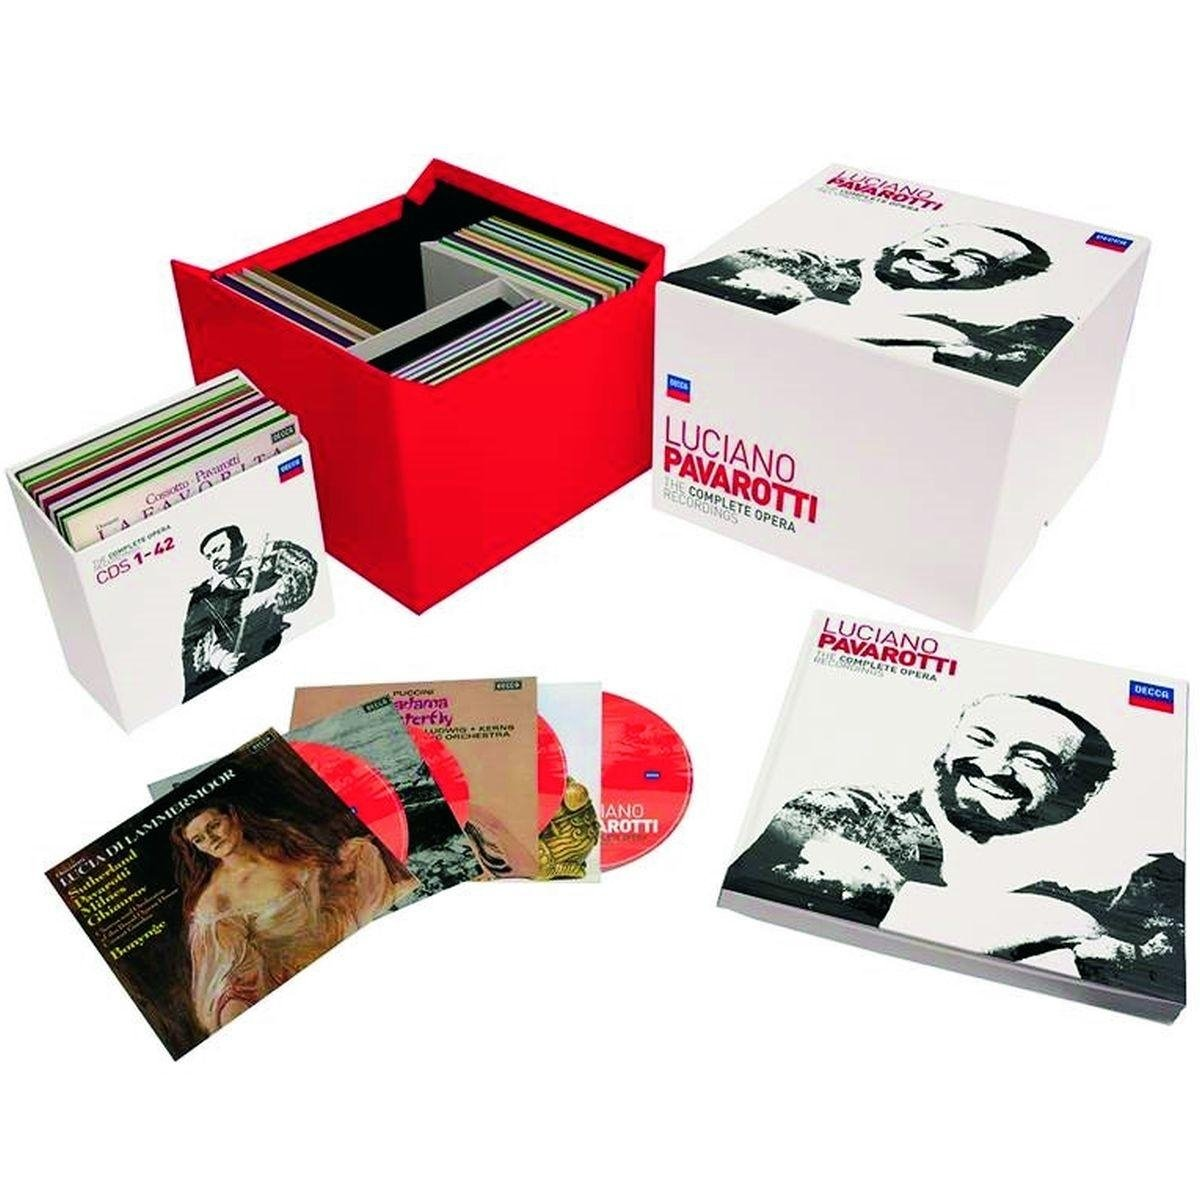 Luciano Pavarotti - the Complete Opéra Recordings  Zubin Mehta, The London  Opéra Chorus  Amazon.fr  Musique 864345049d12